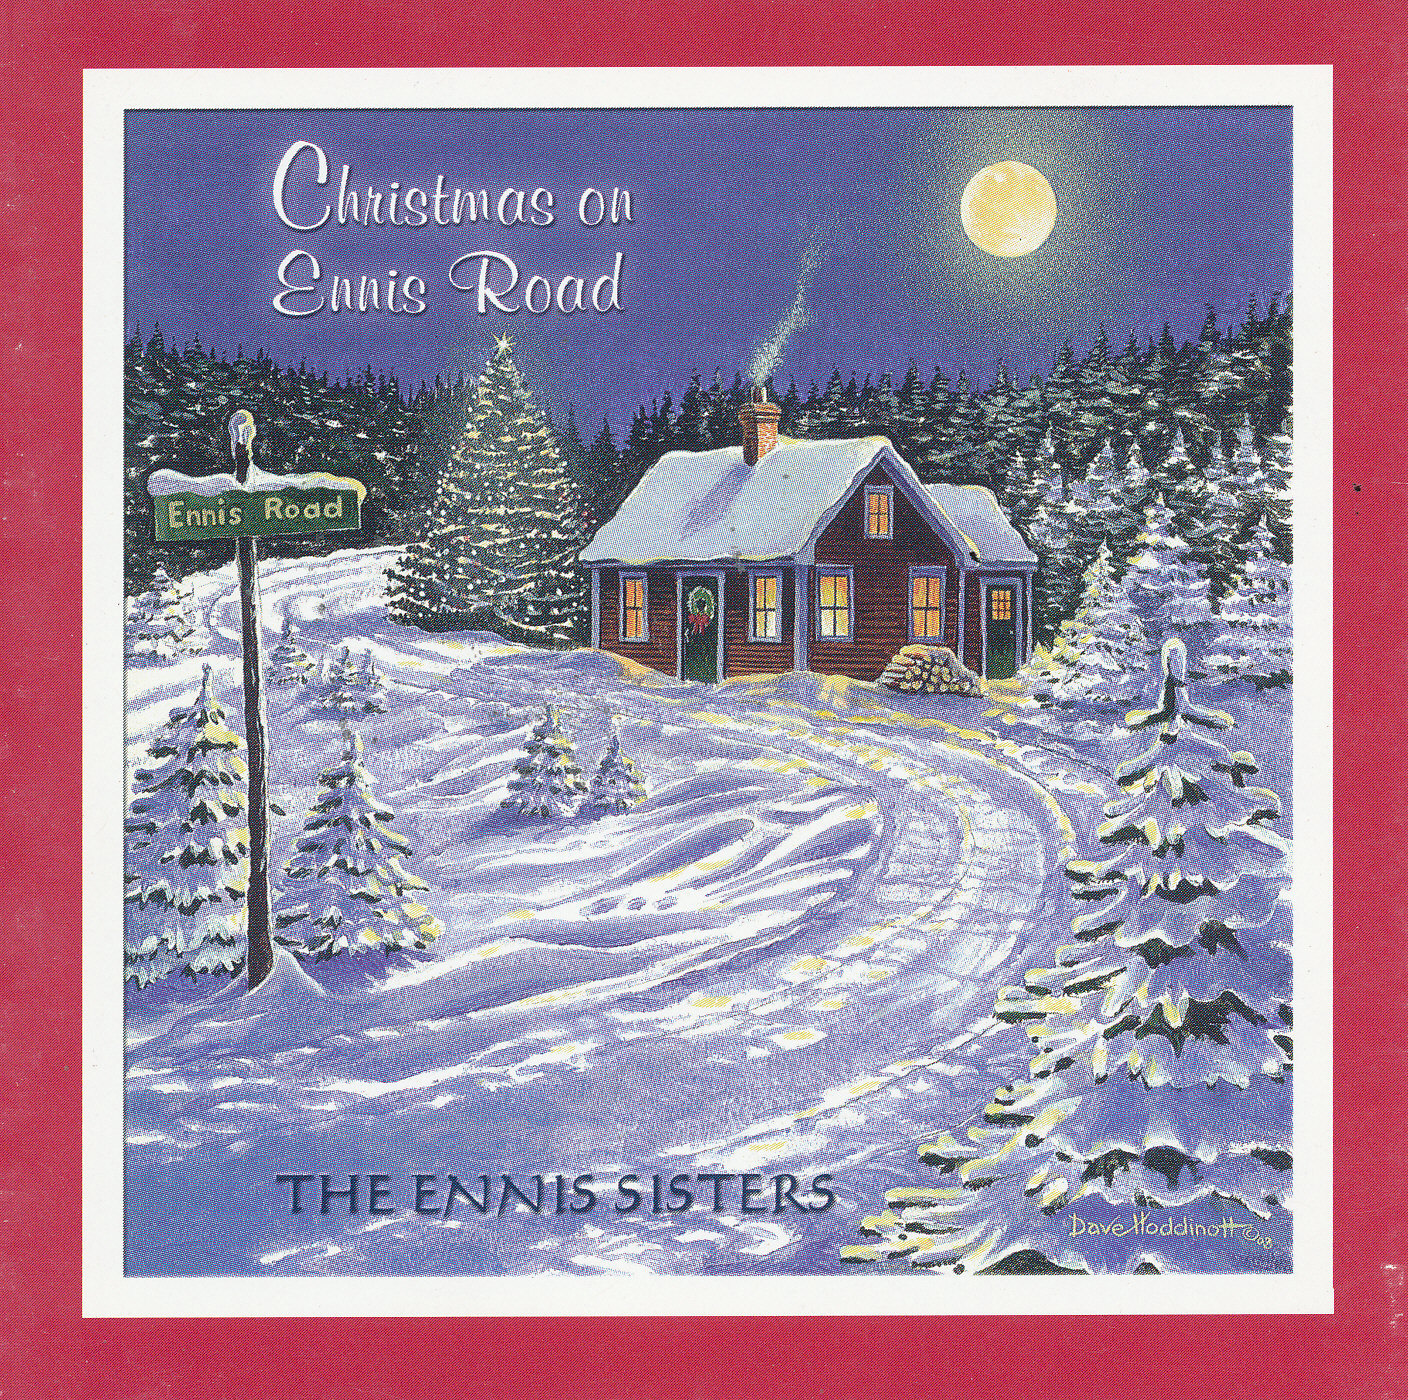 Freds Records » Blog Archive Ennis Sisters - Christmas On Ennis Road - Freds Records